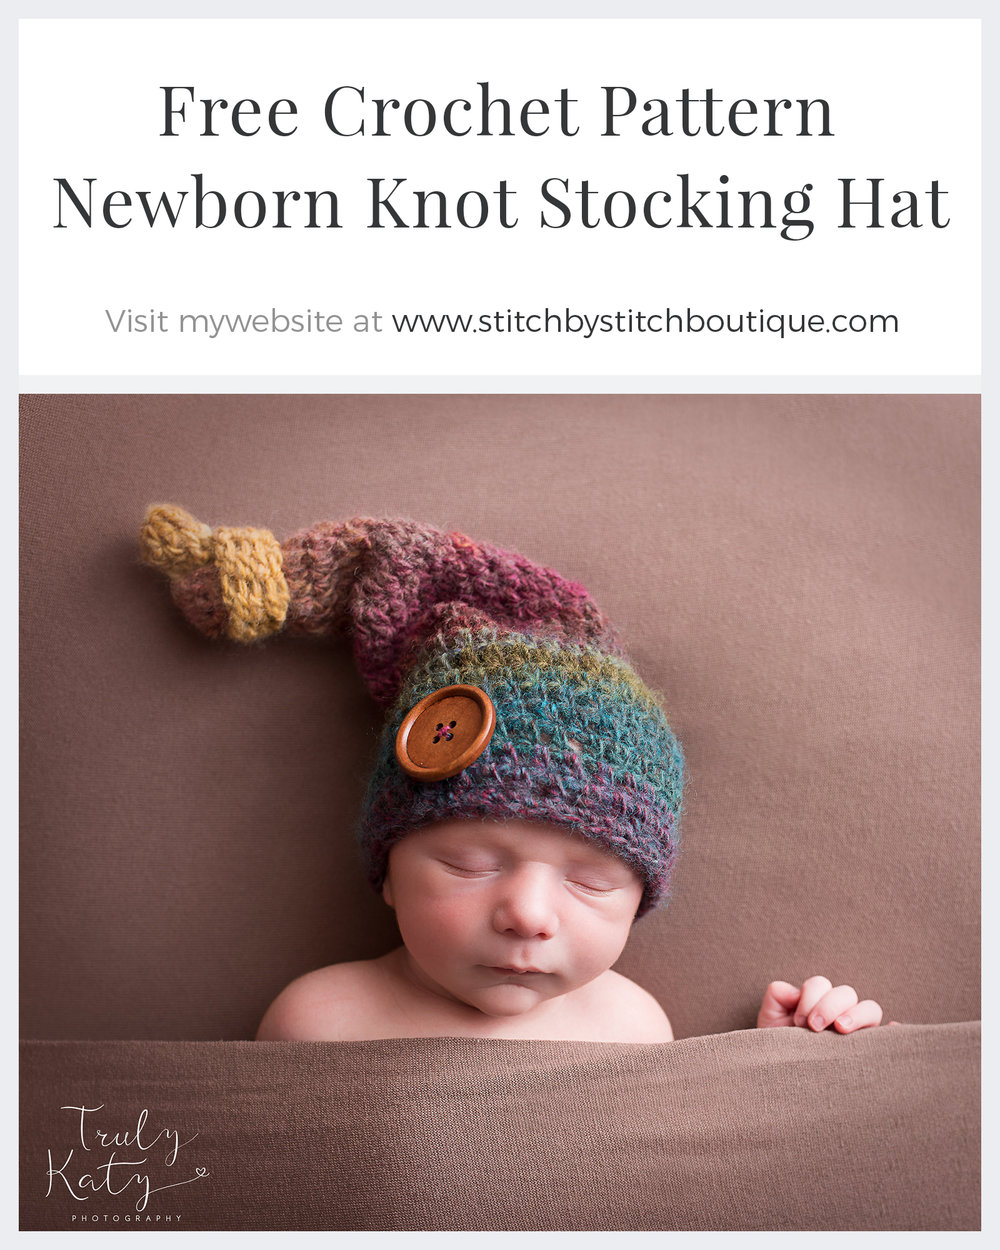 Free Crochet Newborn Knot Stocking Hat Pattern